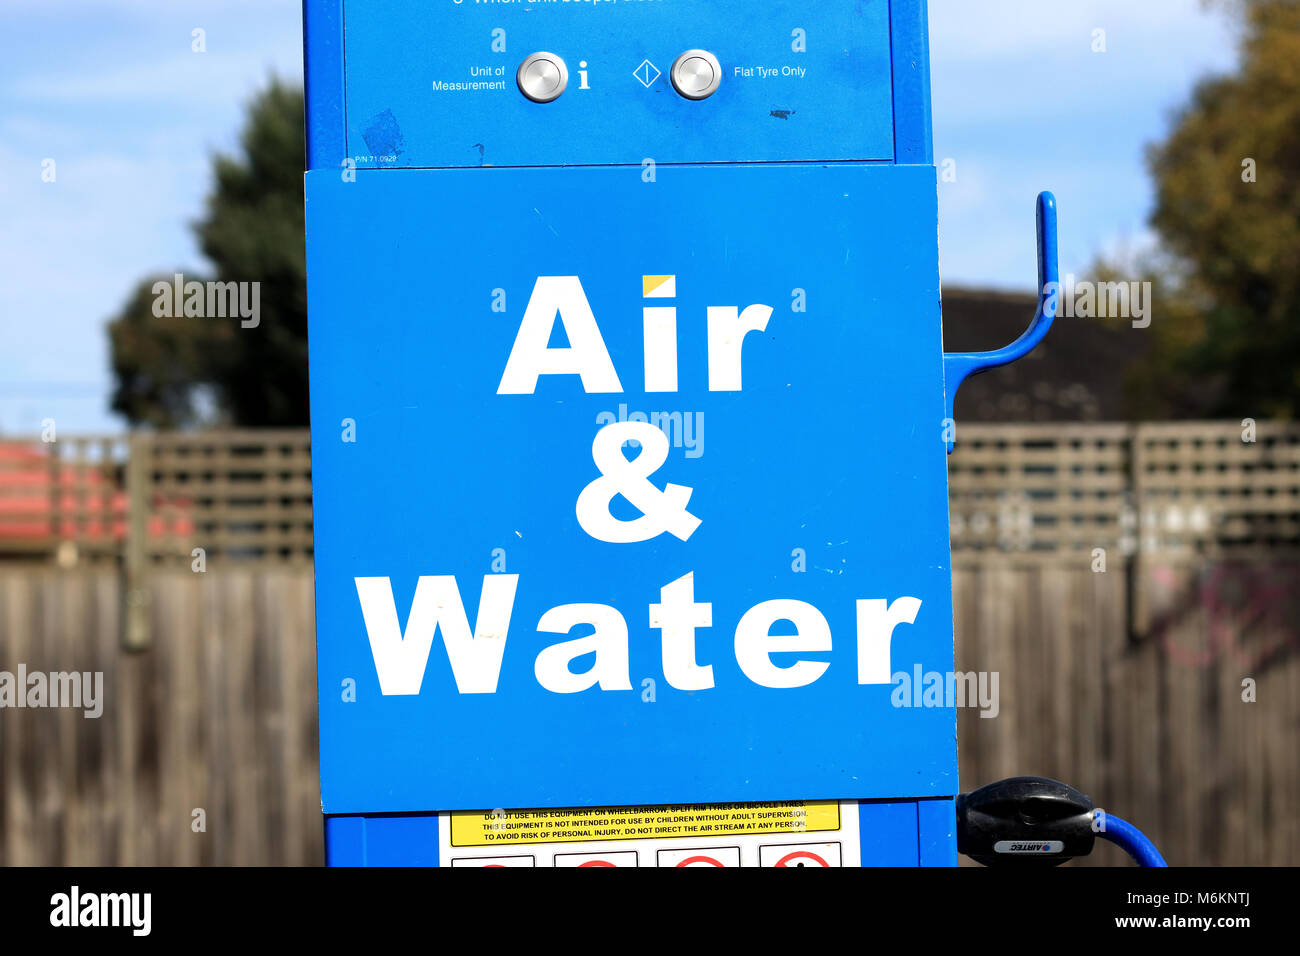 Water tap and Air Pressure pump hose at United Petrol Station in Melbourne Victoria Australia - Stock Image